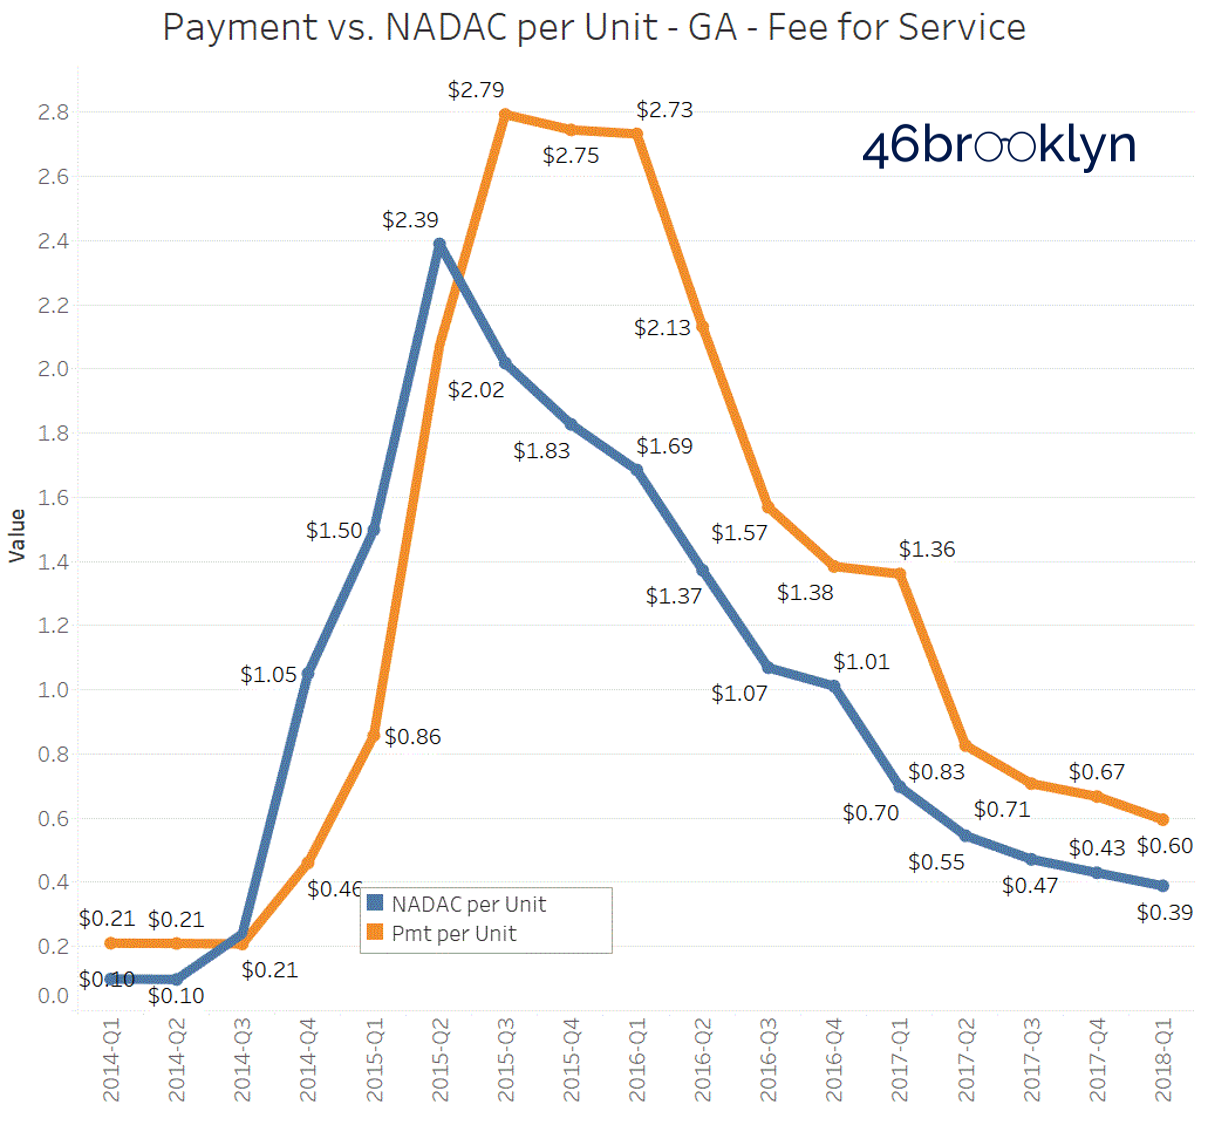 Figure 4   Source: CMS State Utilization Database, CMS NADAC Database, 46brooklyn Research